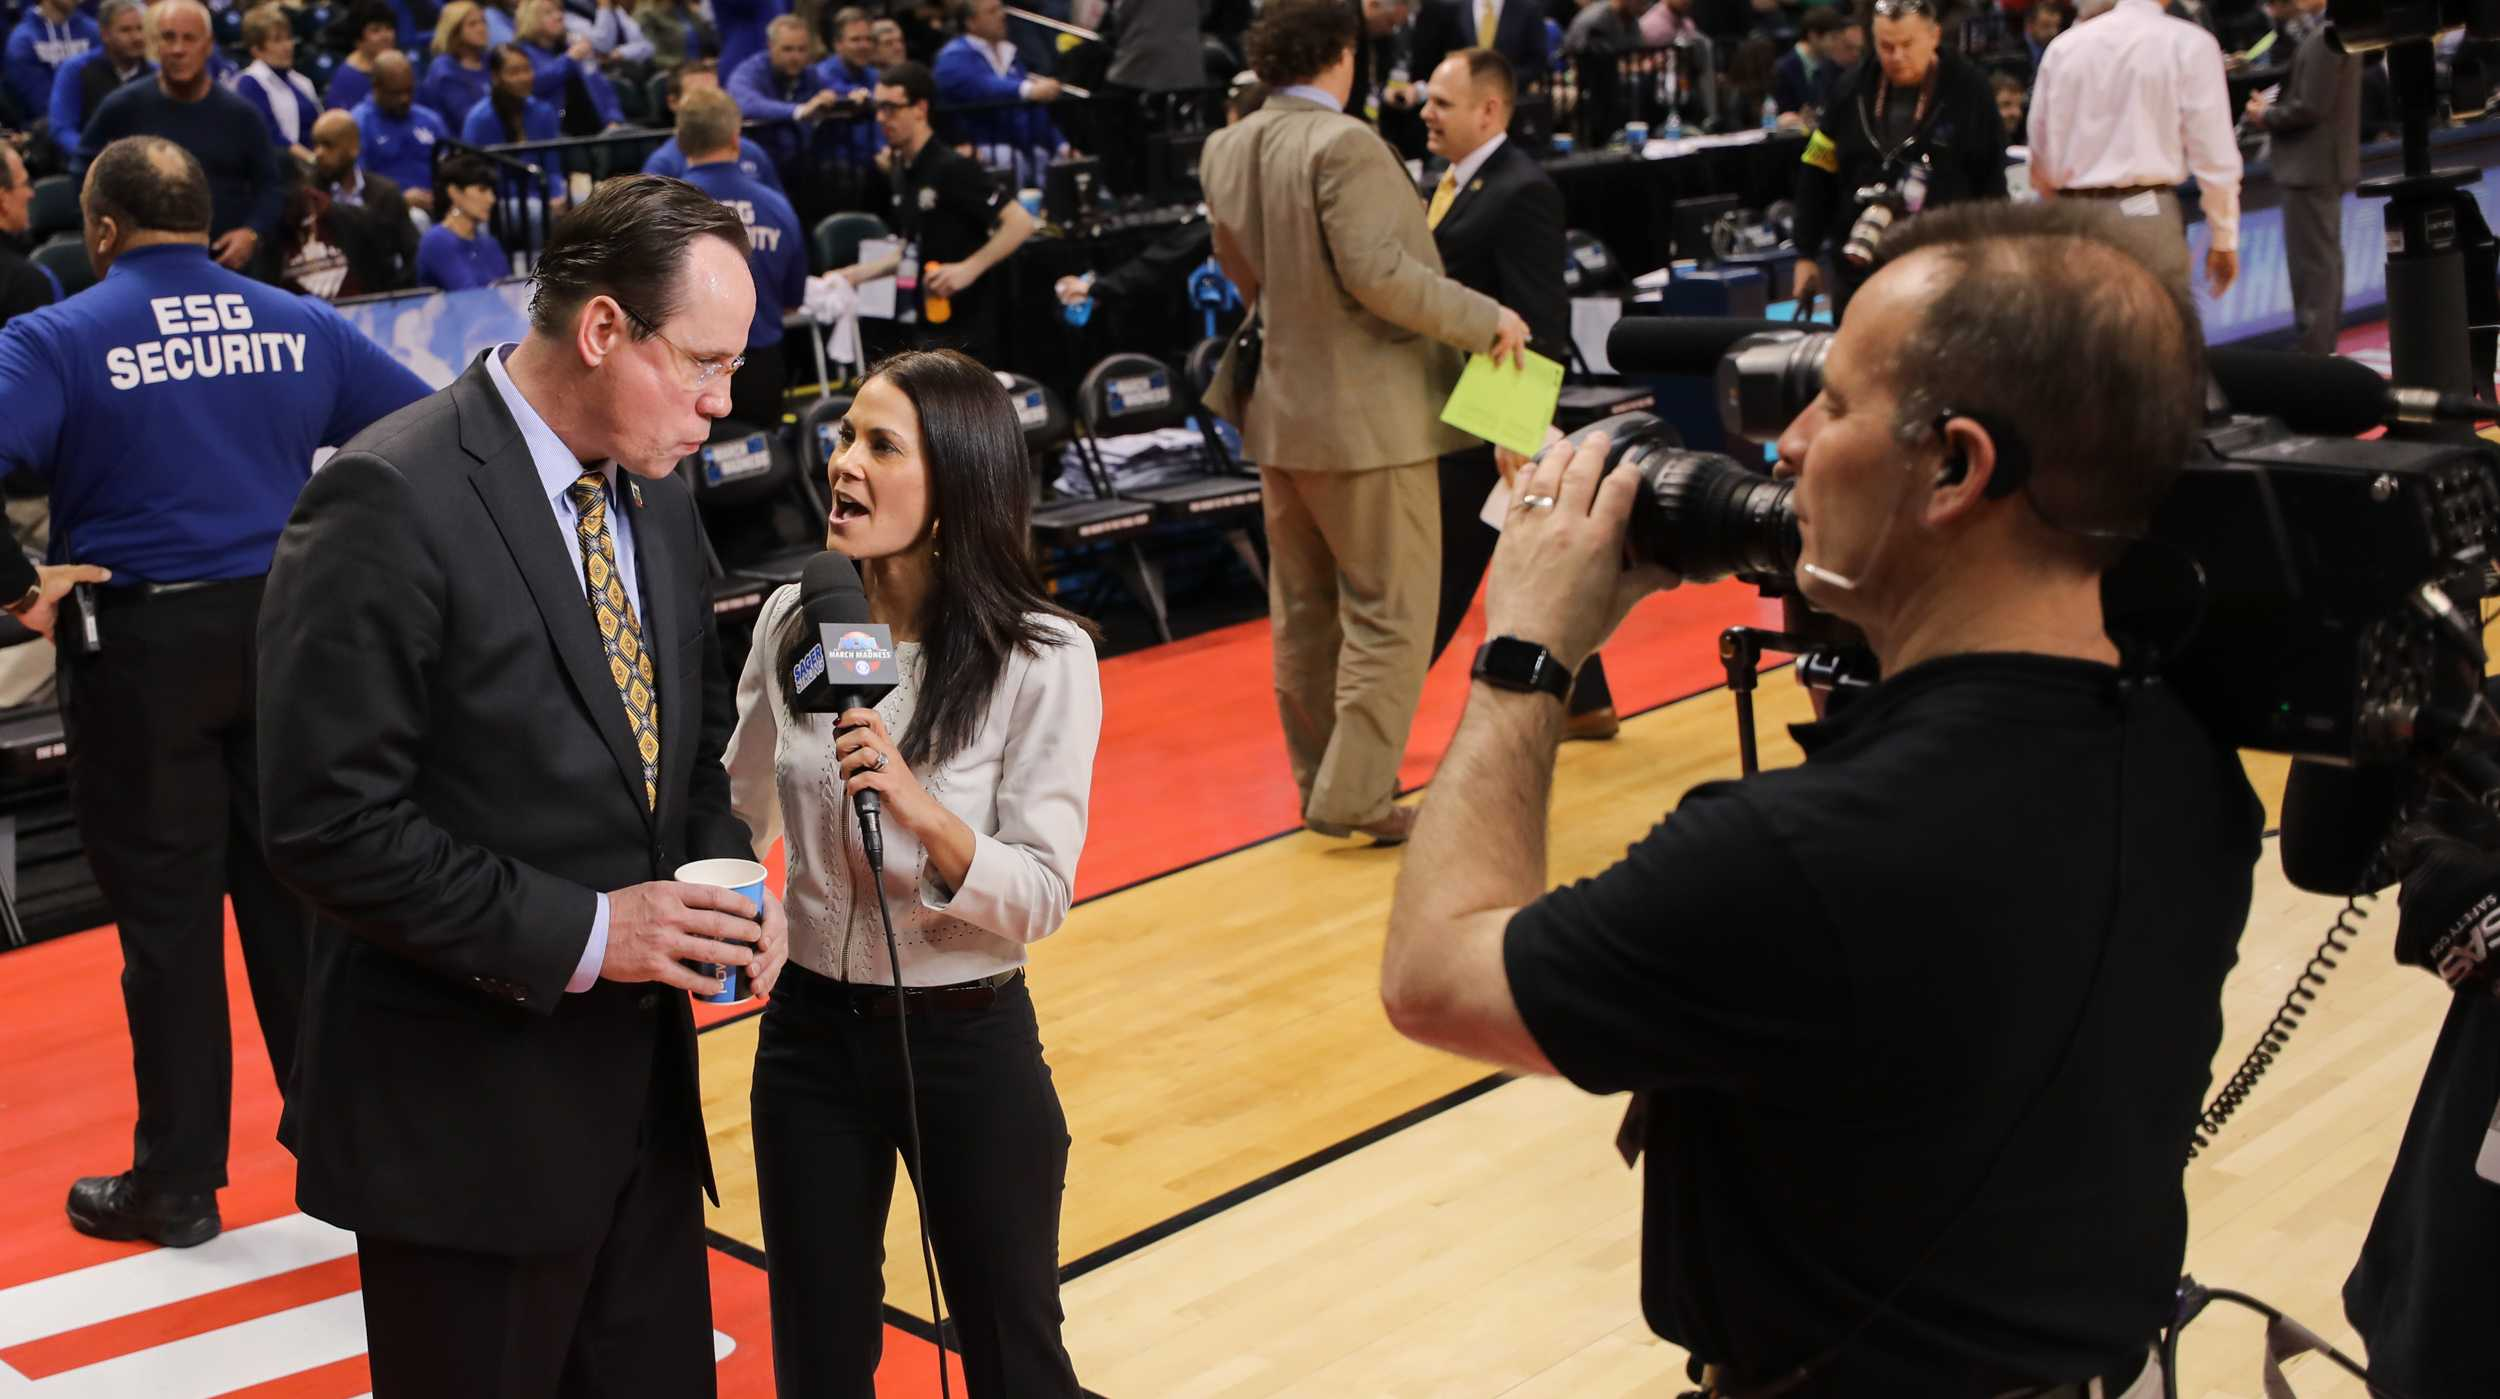 Wichita State head coach Gregg Marshall talks to CBS news anchor after the Shockers' 64 – 58 victory over the Dayton Flyer at Bankers Life Fieldhouse in Indianapolis